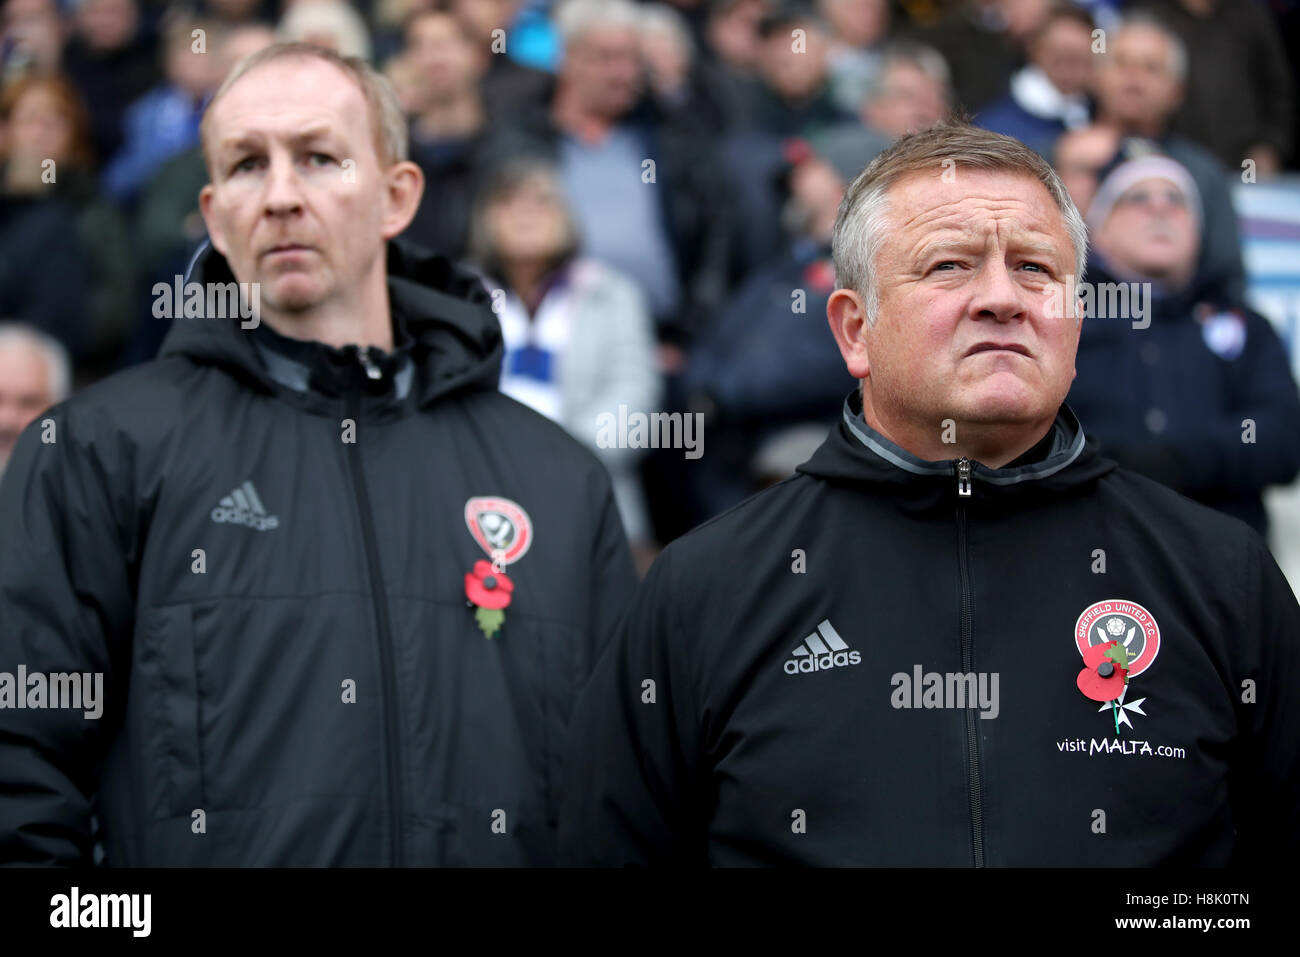 Sheffield United manager Chris Wilder (right) and assistant Alan Knill (left) during the Sky Bet League One match - Stock Image